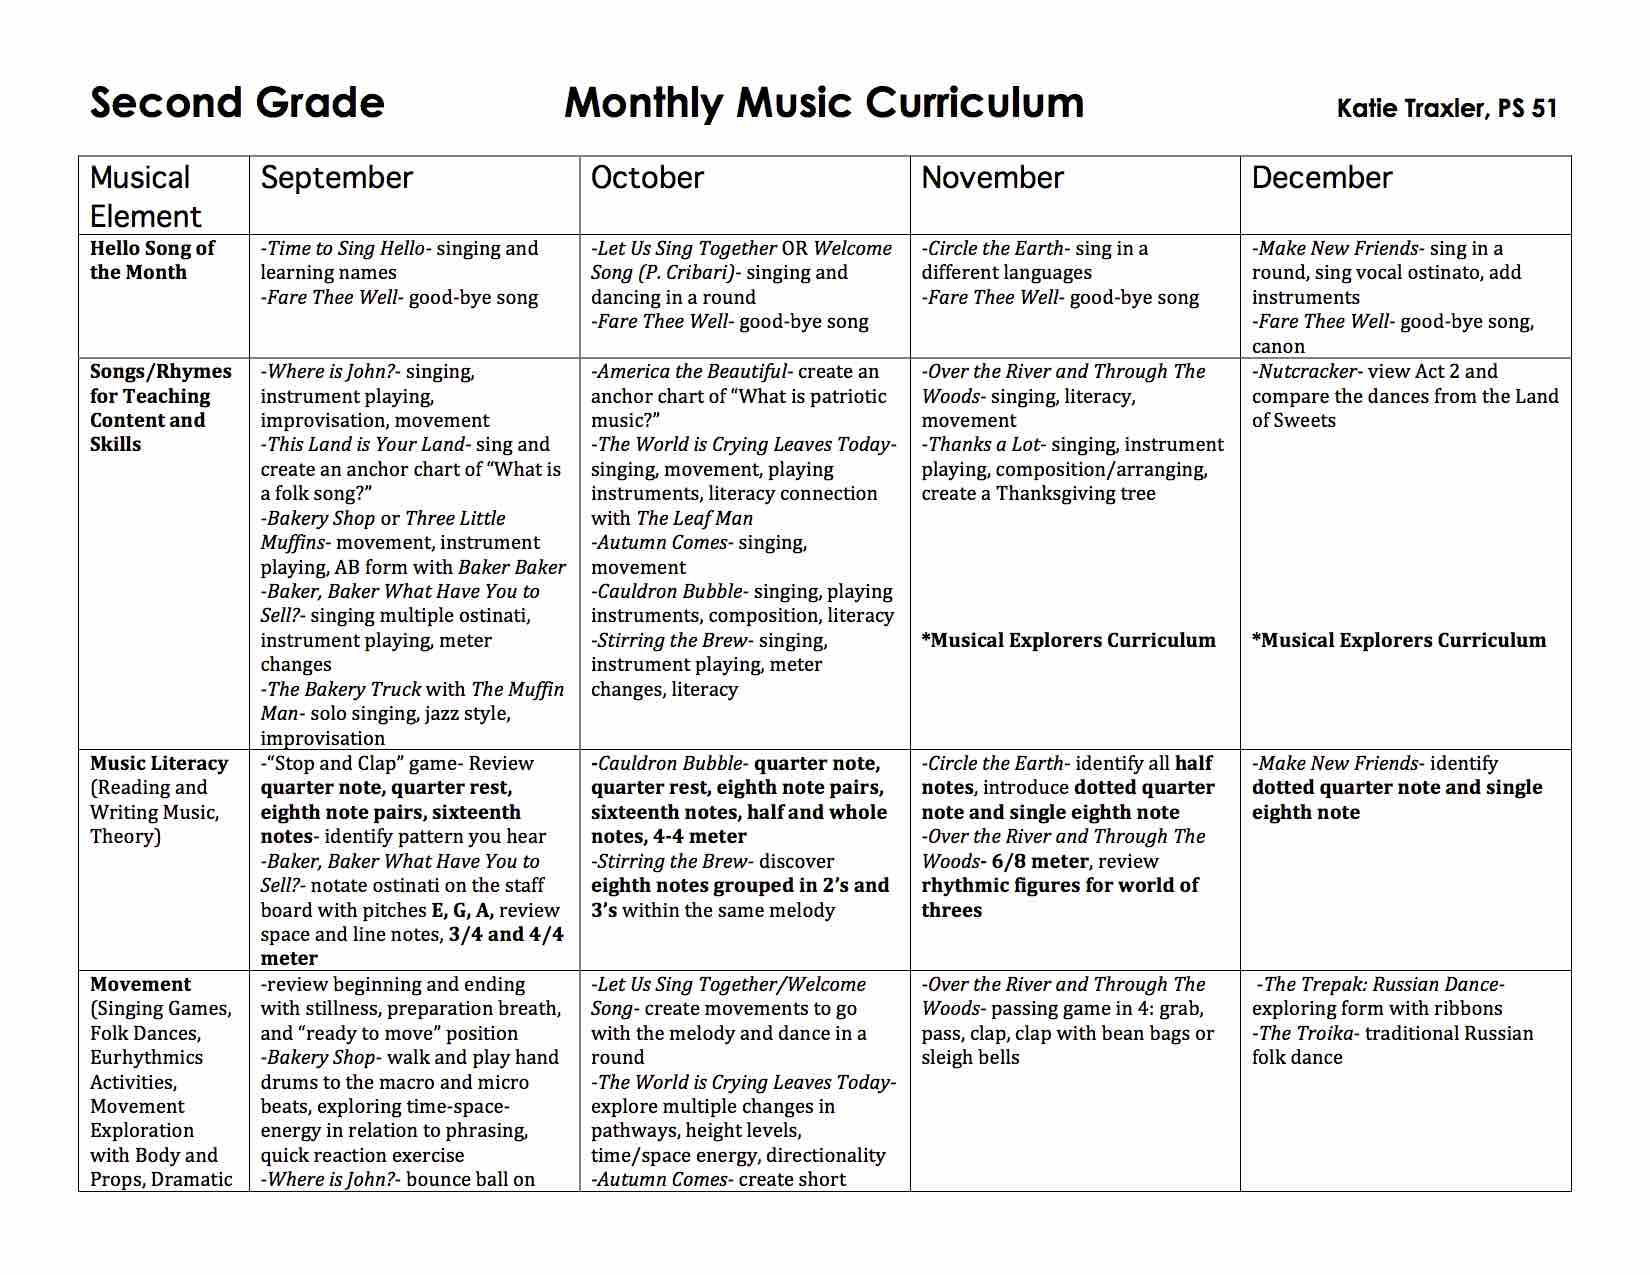 Second Grade Music Curriculum Maps Katie Traxlercom